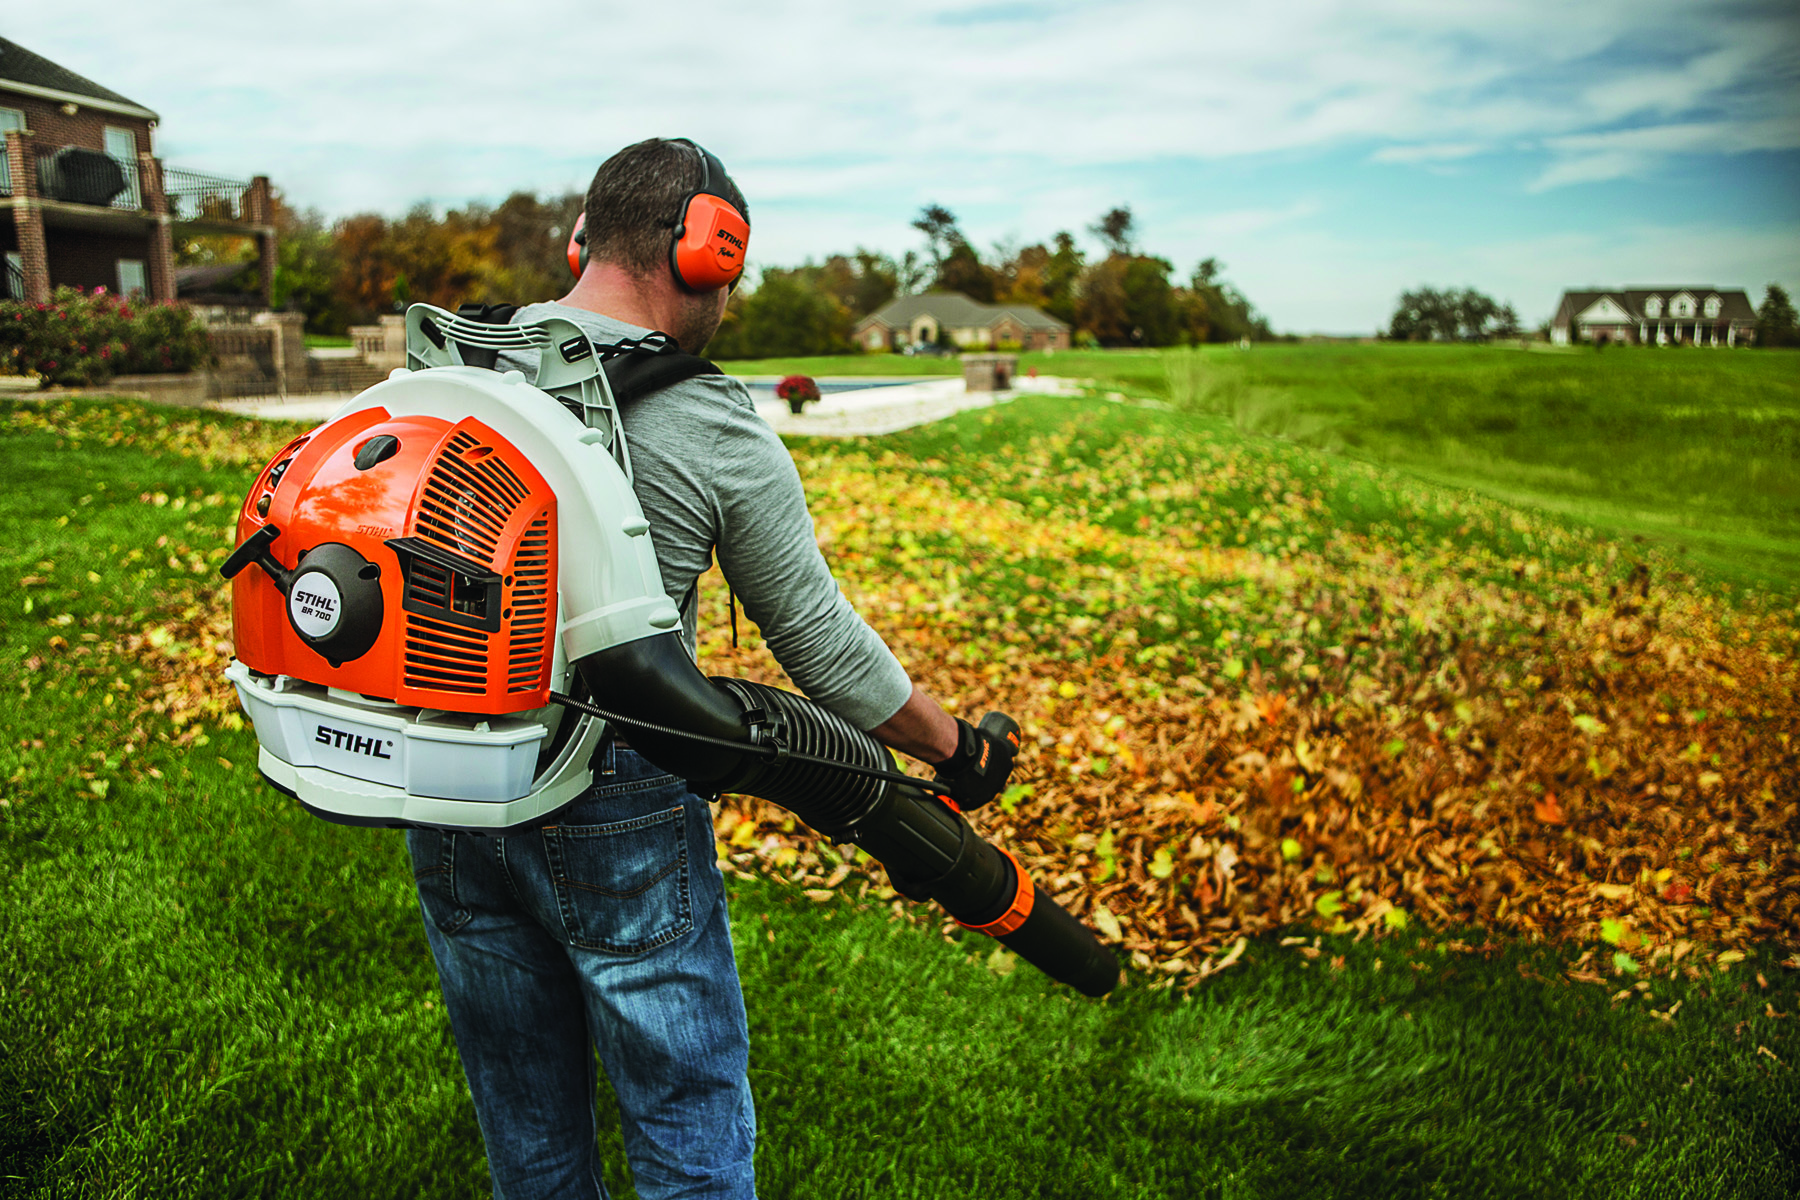 STIHL Introduces Its Most Powerful Backpack Blower | STIHL USA